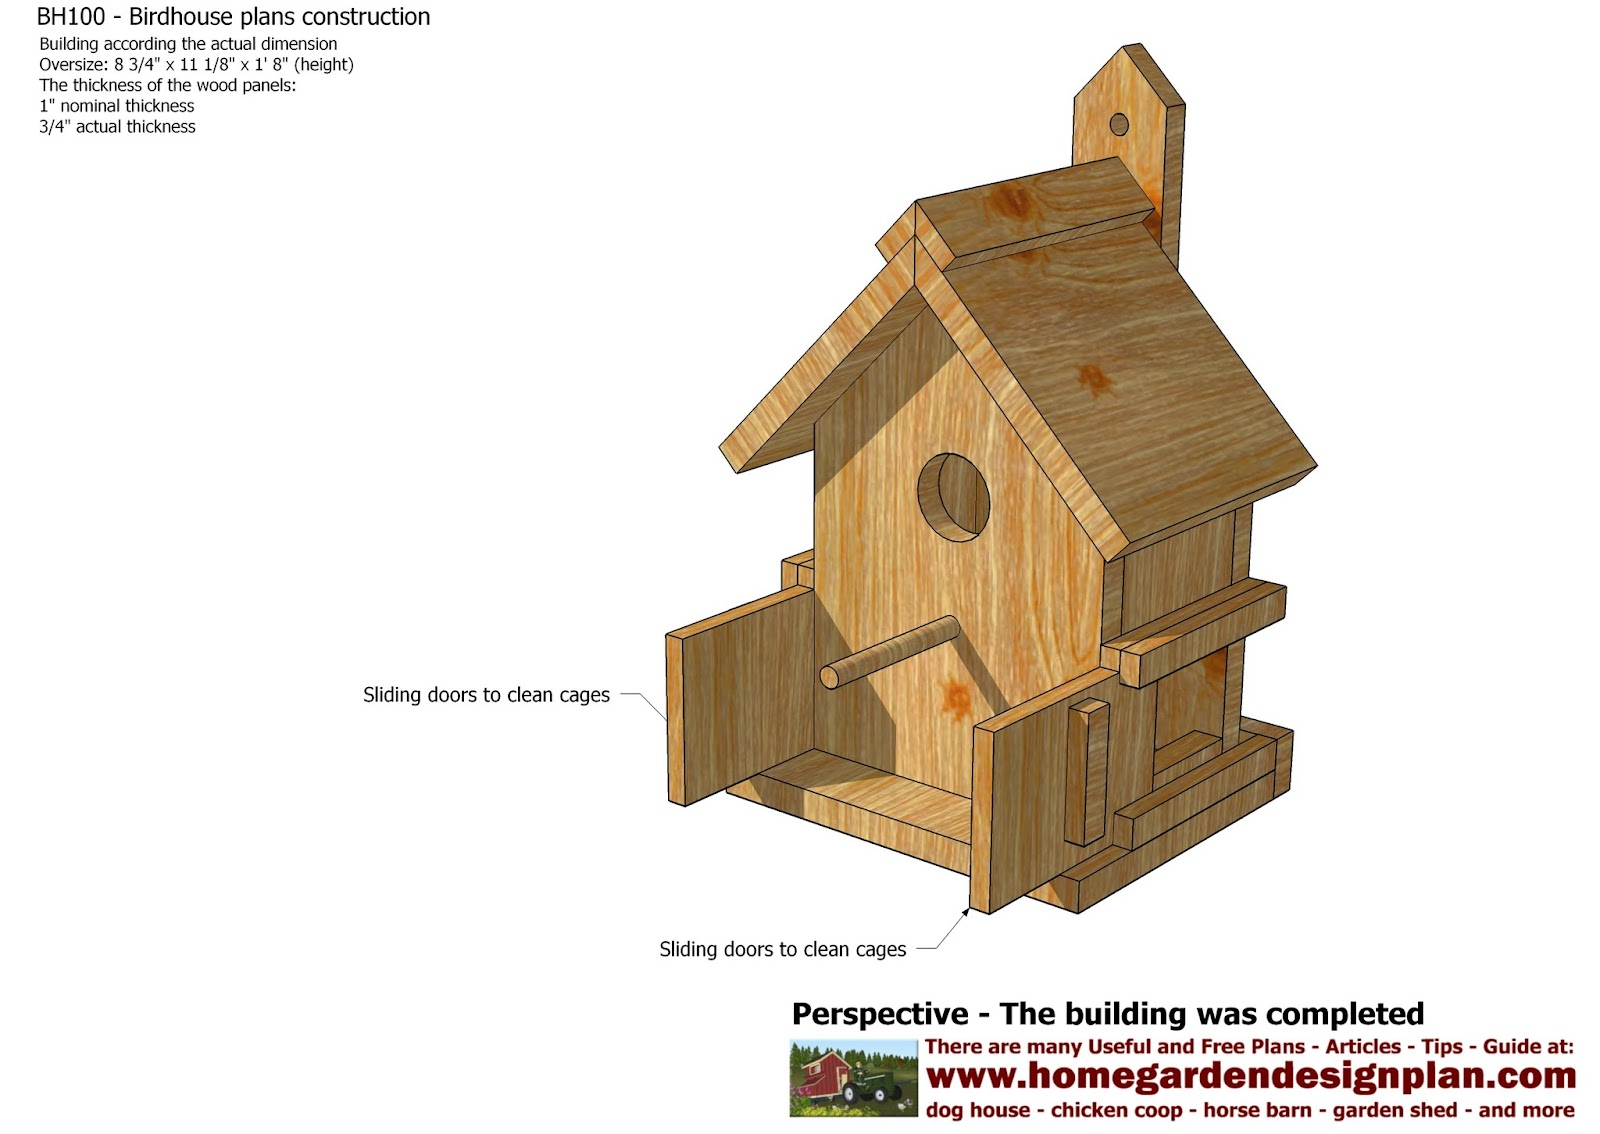 home garden plans: bh100 - bird house plans construction - bird